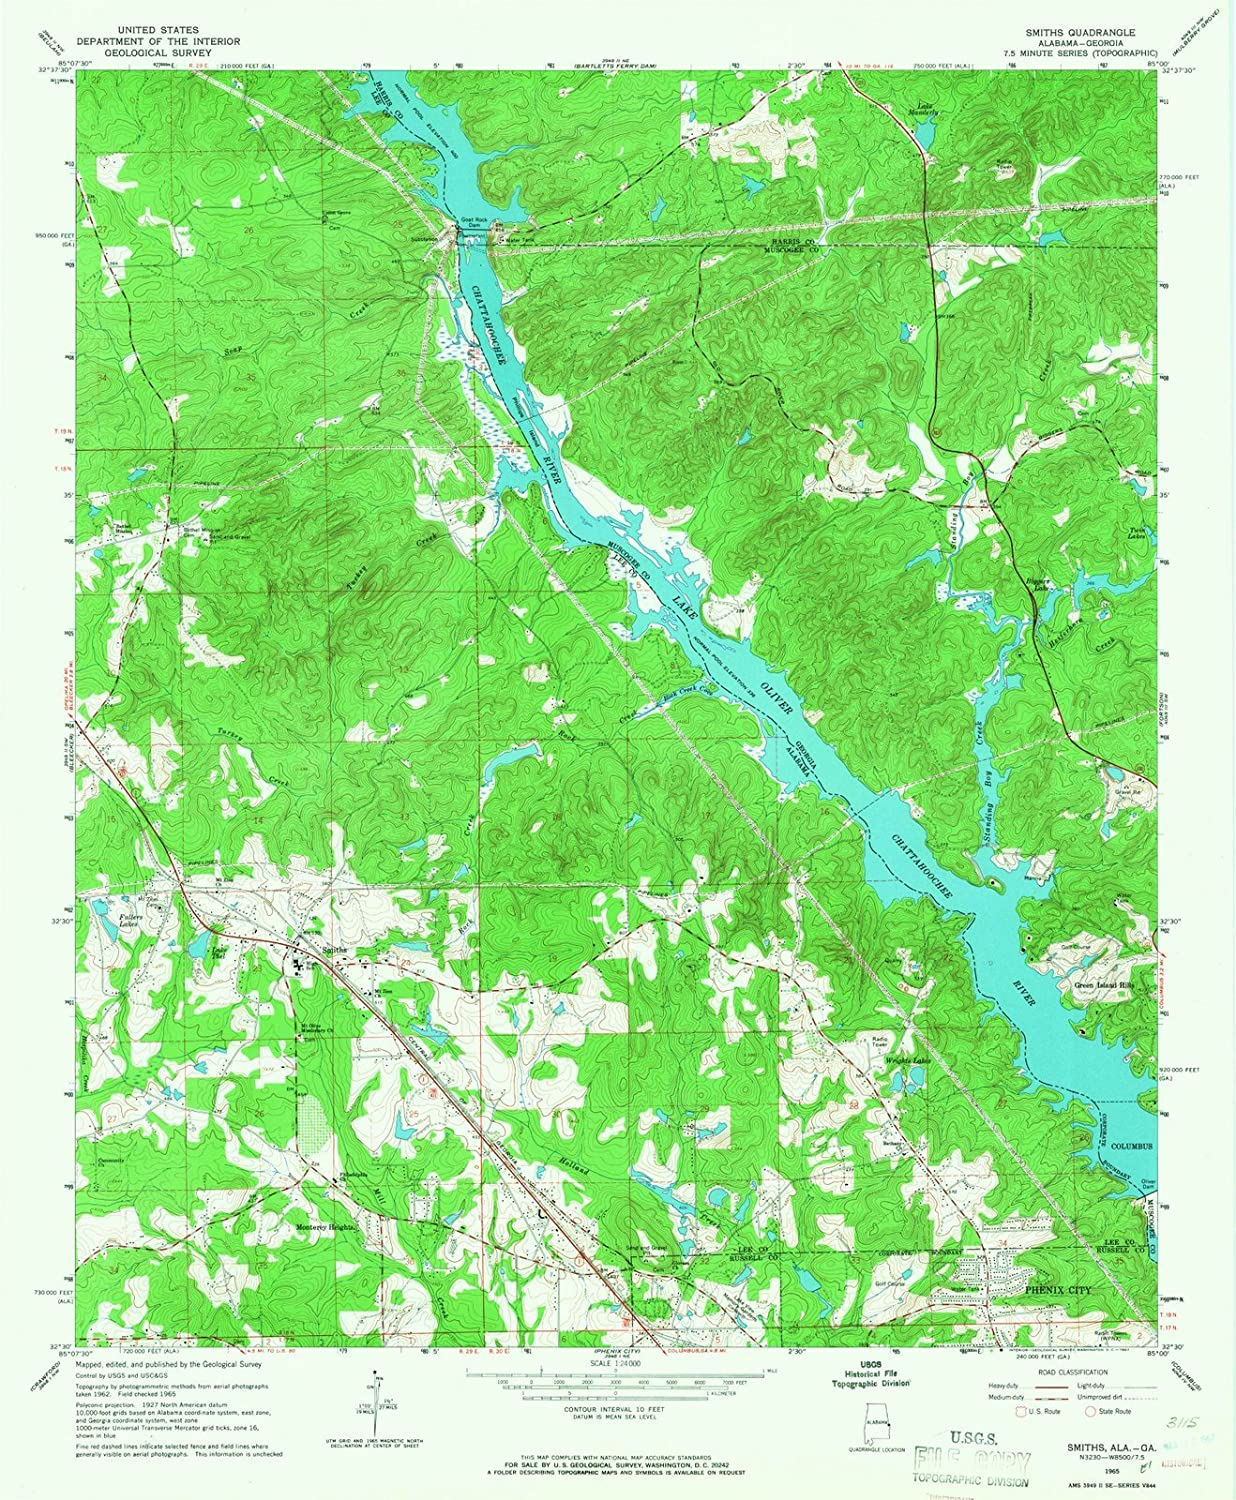 Amazon.com: Alabama Maps | 1965 Smiths, AL USGS Historical ... on interstate 30 map, interstate map of mississippi and alabama, interstate 85 map, lincoln way map, new jersey route 1 map, interstate highway map, interstate 526 map, interstate 75 map, interstate 70 map, interstate 27 map, us highway 78 map, interstate 80 map, interstate 25 map, interstate 10 map, interstate 422 map, interstate 26 map, interstate 44 map, interstate 74 map,